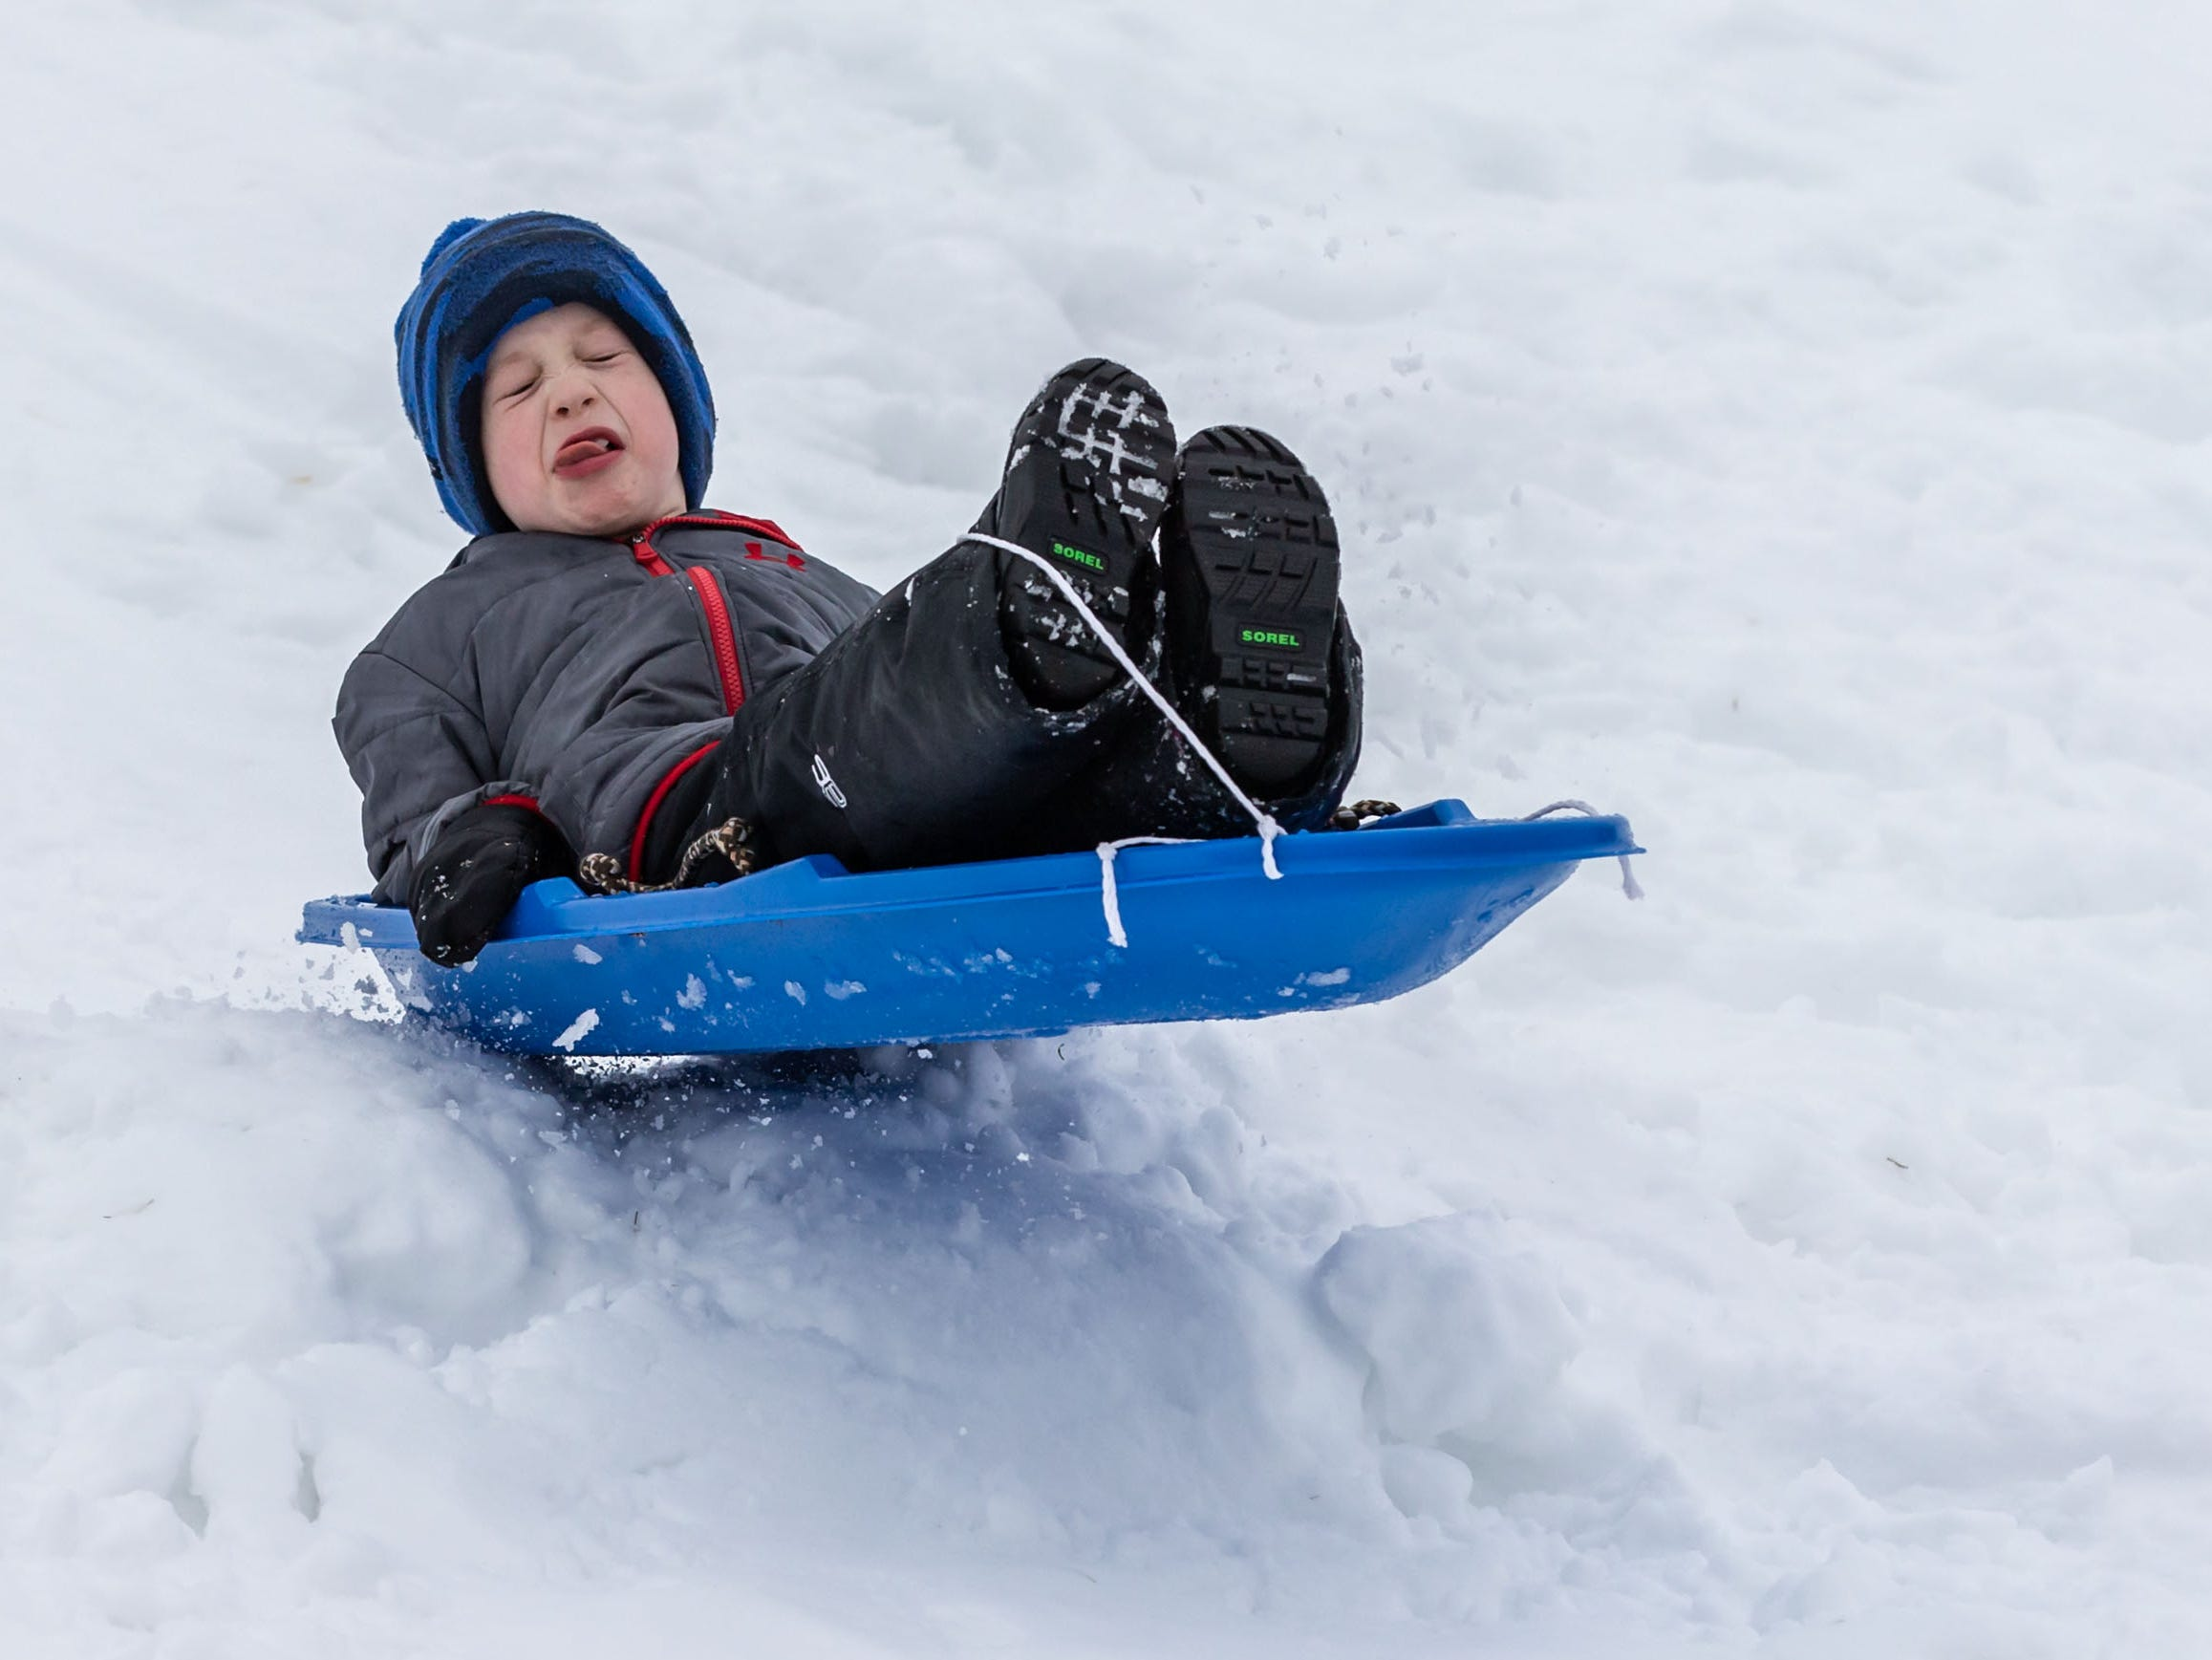 Gibson Herbst, 6, of Mequon holds on tight as he launches off a jump at the Mee-Kwon Park sledding hill in Mequon on Saturday, Feb. 2, 2019. The park is open 7 days a week from 6 a.m. to 9 p.m. but is not lighted.